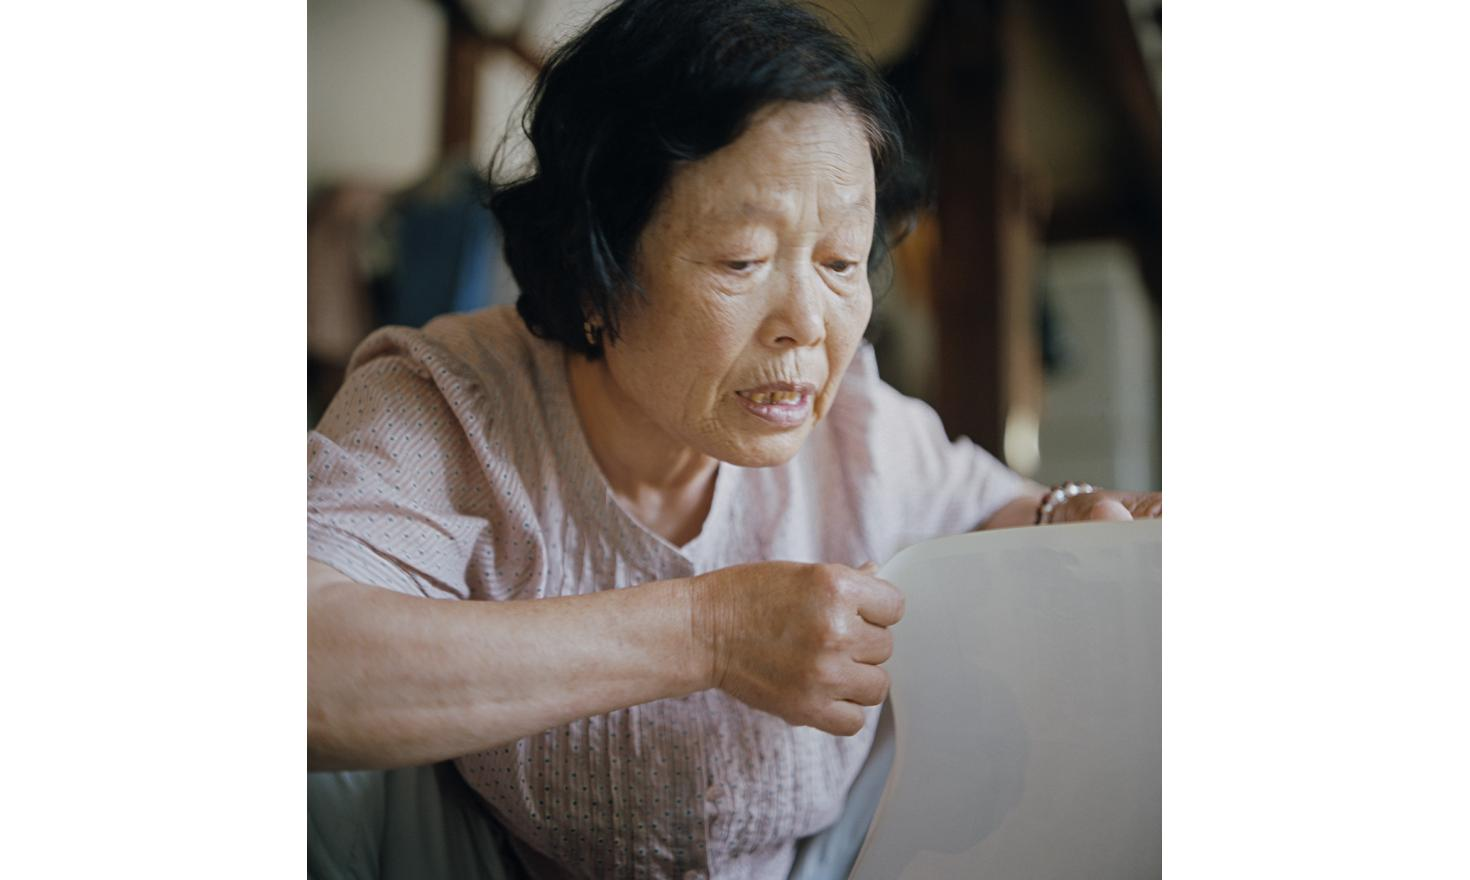 Around Geoncheon 24th of June 2013. Mrs Park Sook Ha and Mr Cho Sang-Hwan wanted a boy. When her fourth daughter is born, they took the decision to let her with Mrs Song, the village mid wife.